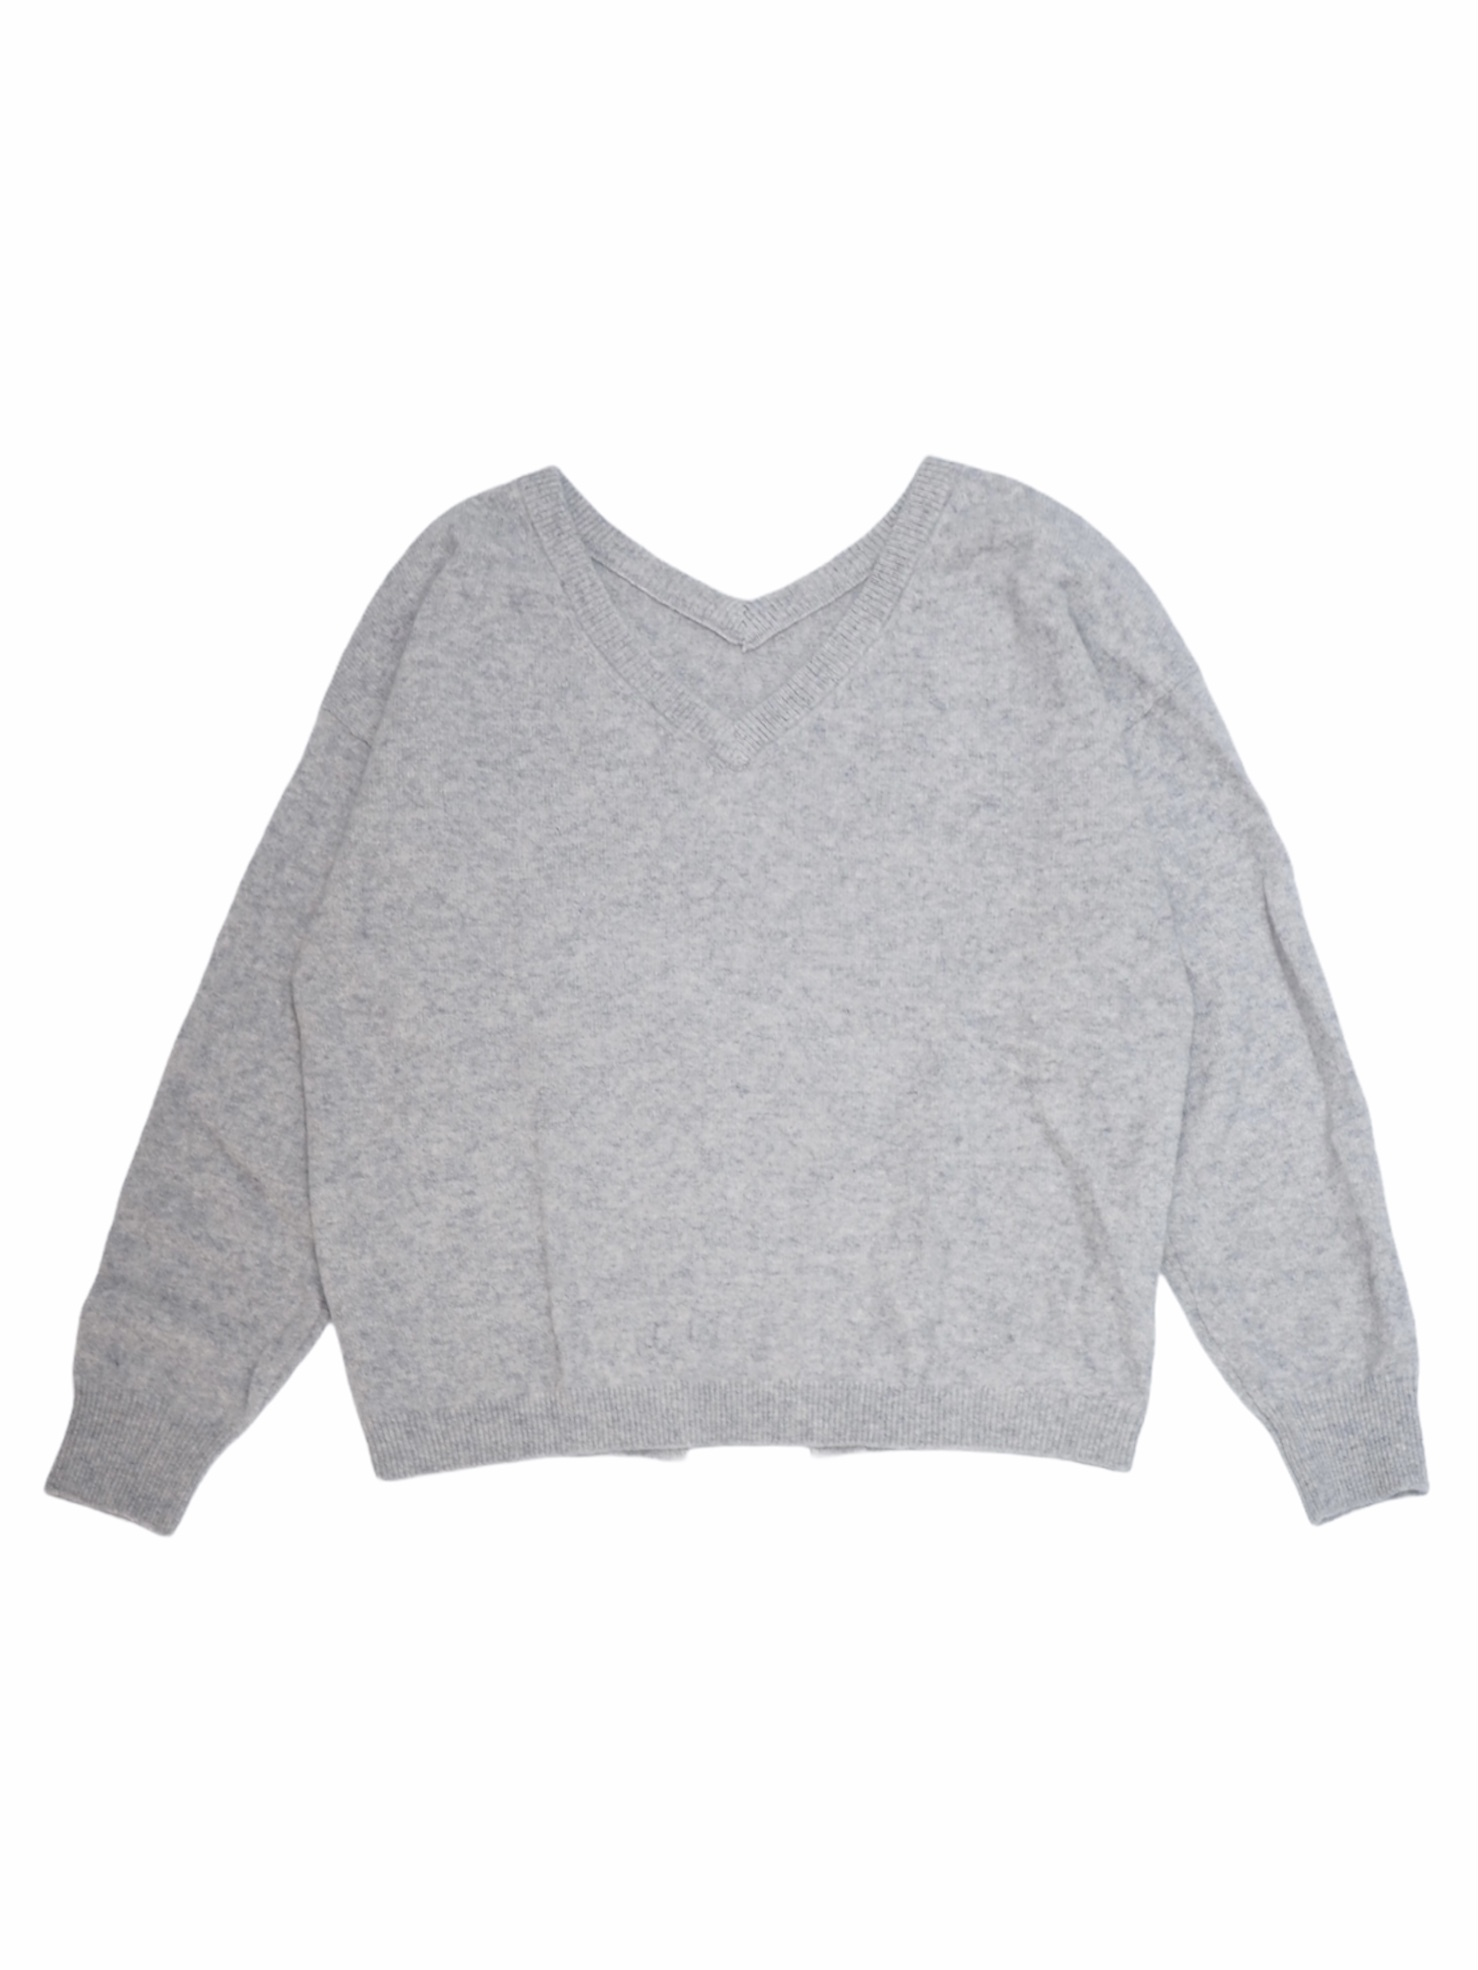 【LILLY LYNQUE】WOOL V NECK KNIT